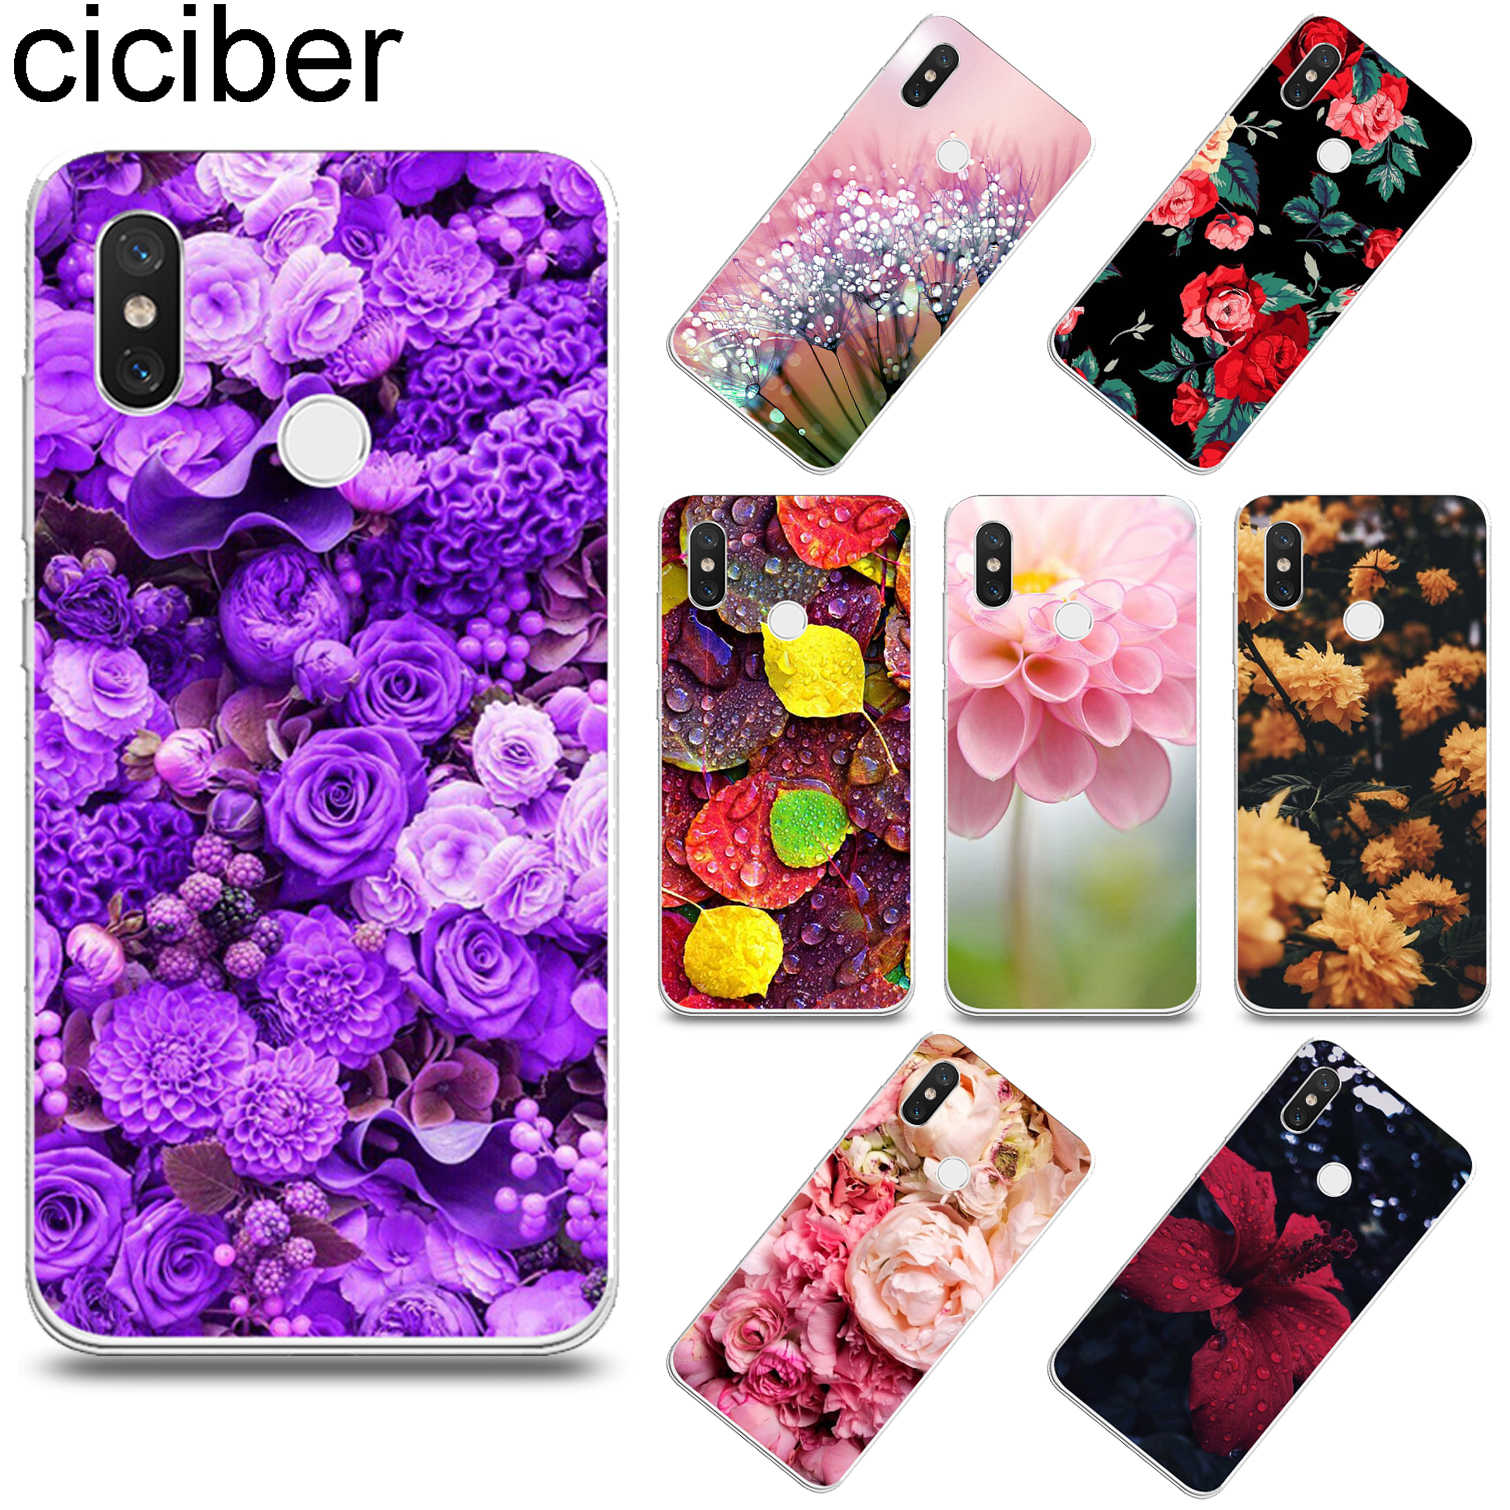 ciciber Lotus peony for Xiaomi mi 9 8 6 5 A2 A1 X 5C 5S Plus Lite SE Poco Phone F1 Soft TPU Cases for Xiaomi MIX MAX 3 2 2s Pro